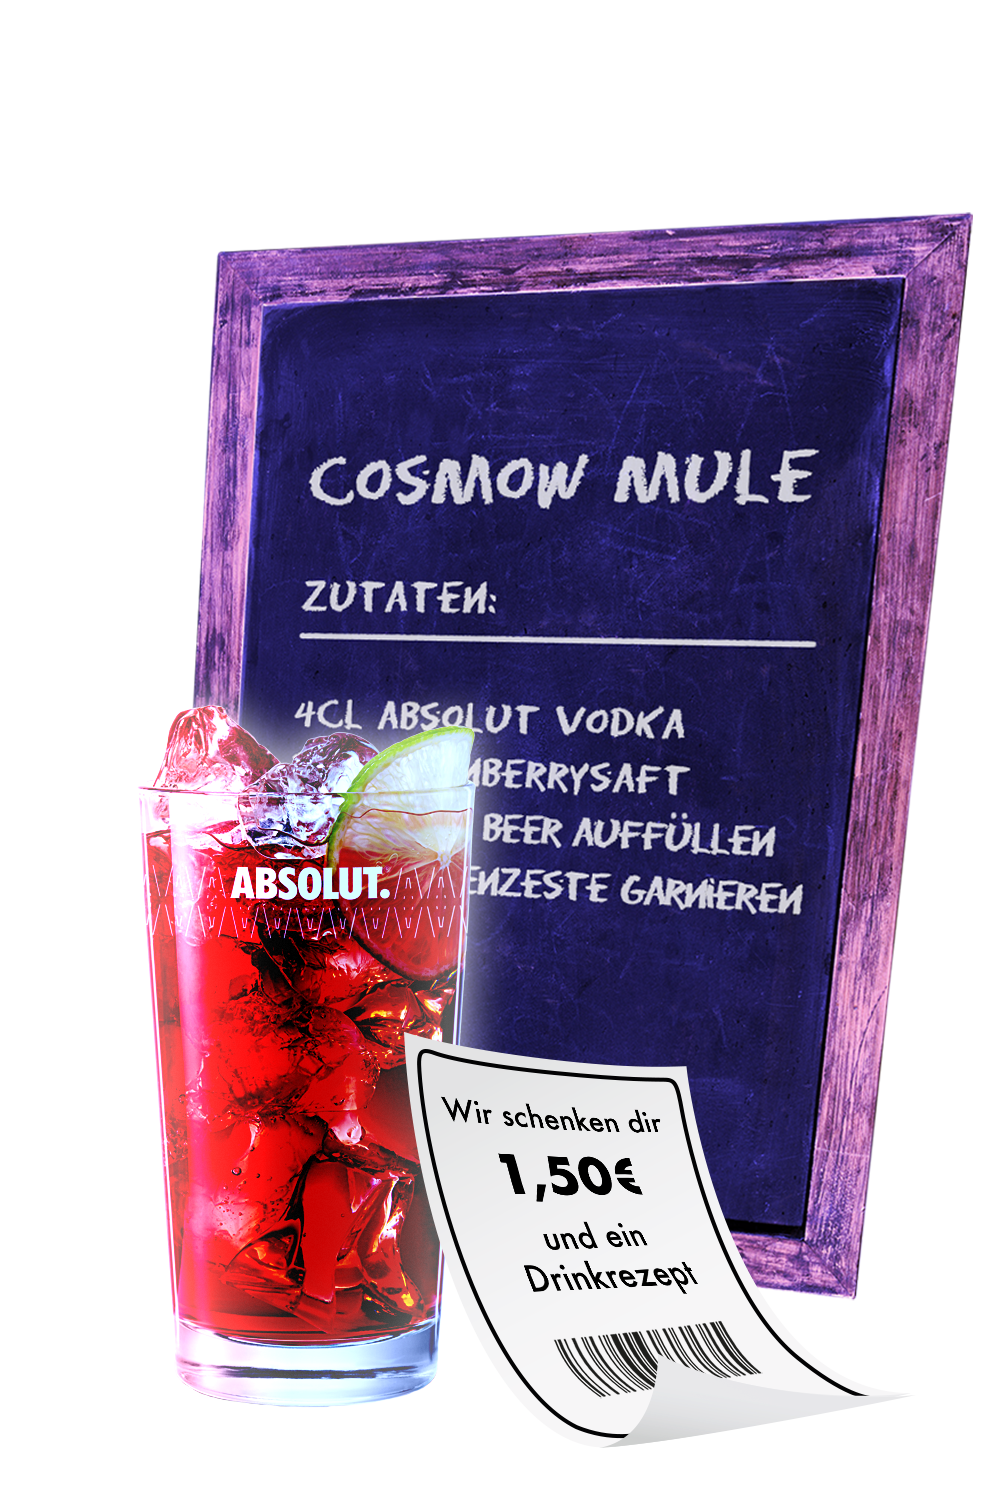 Recipe for Cosmow mule with the drink and a coupon next to it.